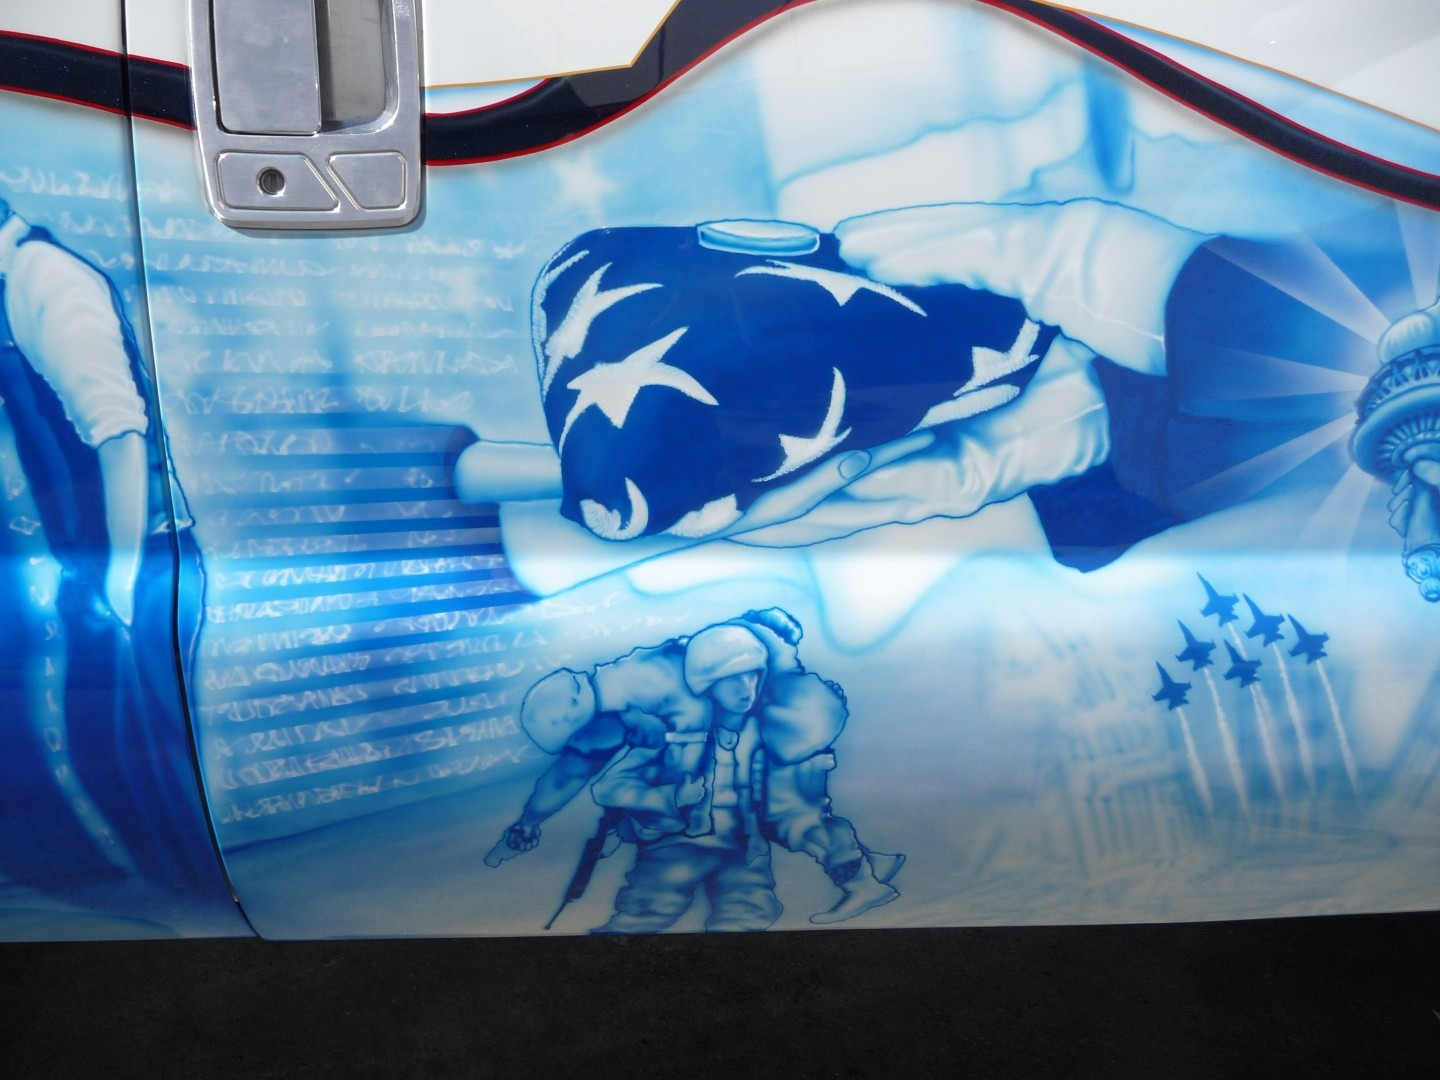 Airbrush Artwork